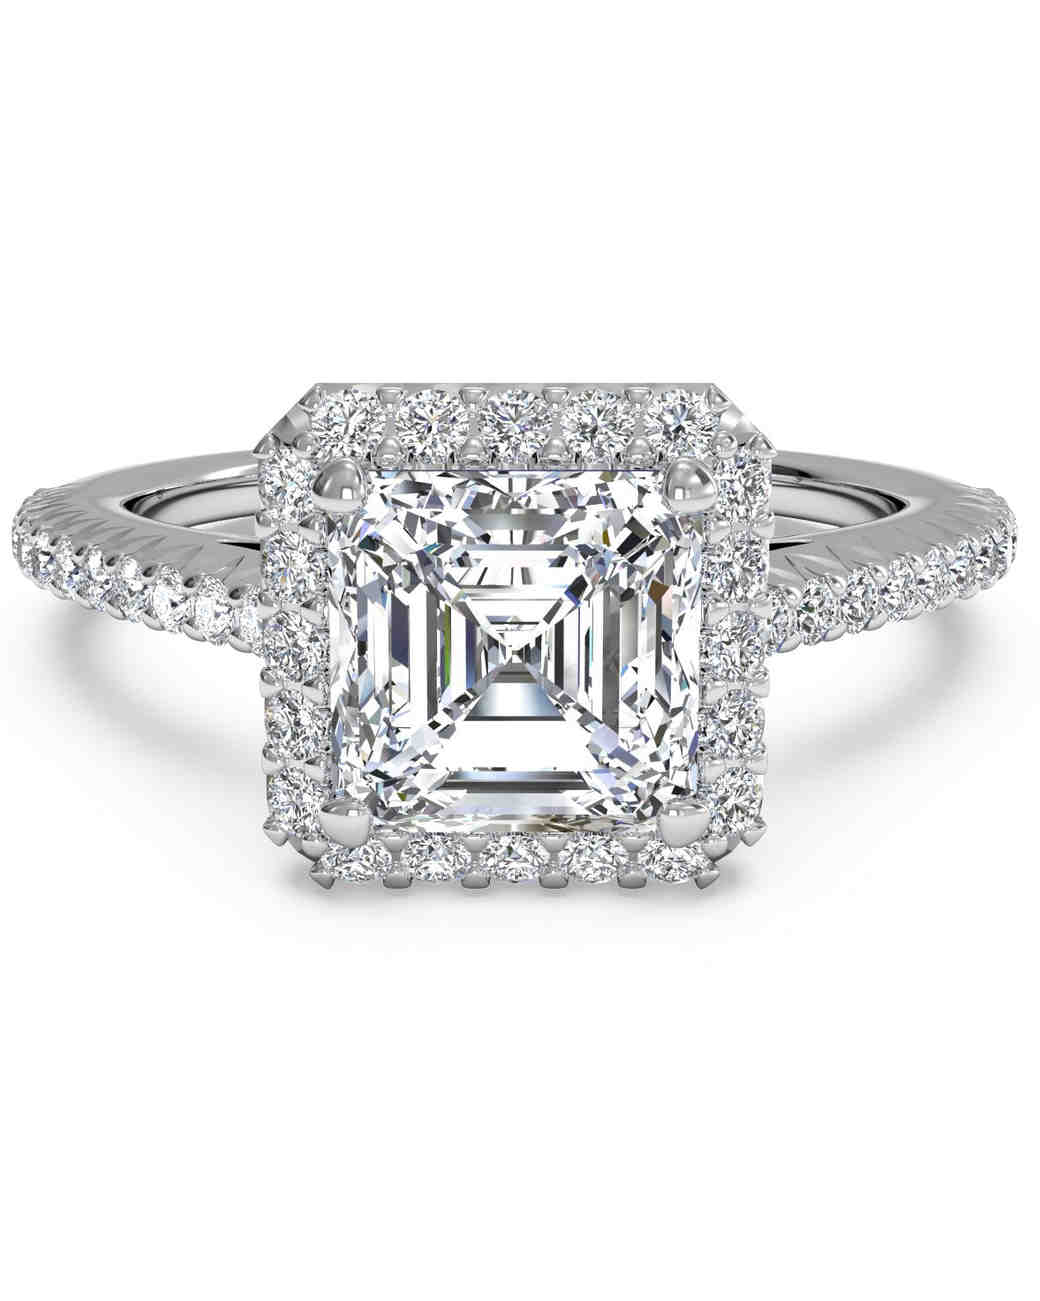 Custom Asscher Diamond Engagement Rings In Dallas Texas, Shira Diamonds